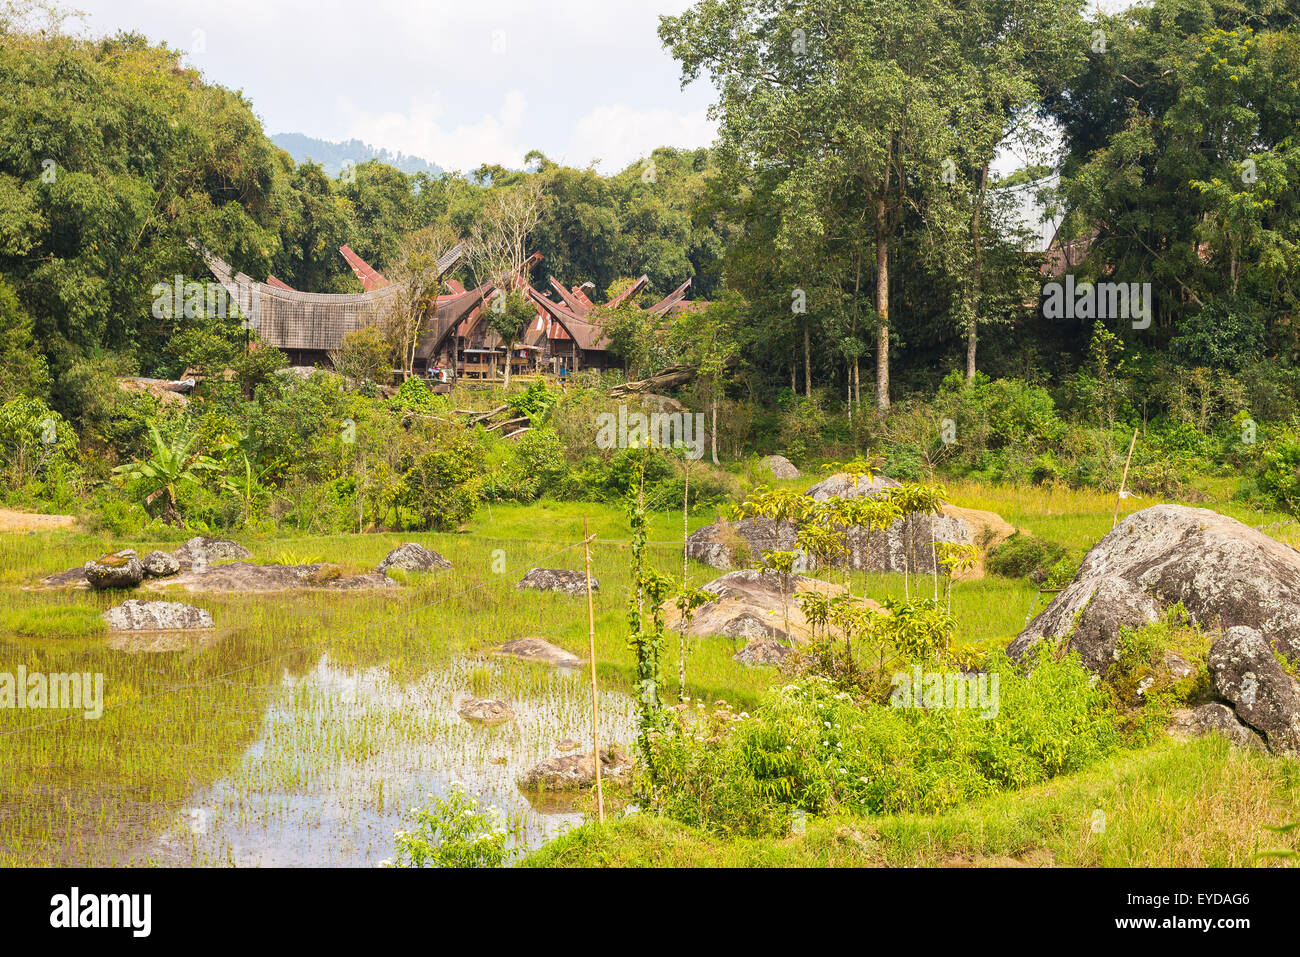 Little traditional village with tipical boat shaped roofs in idyllic location among beautiful terraced rice paddies Stock Photo